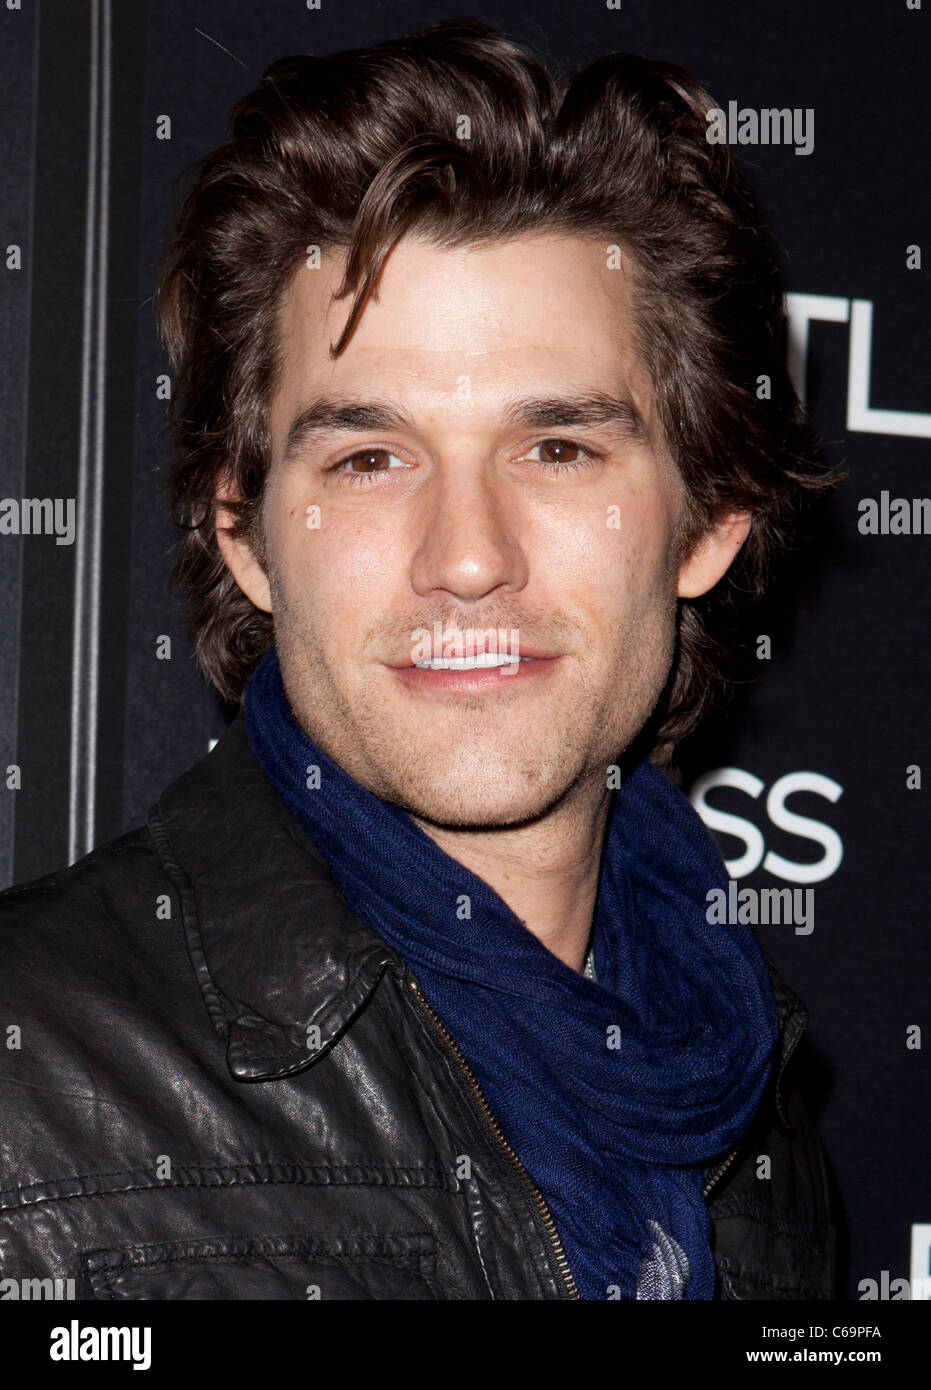 Johnny Whitworth at arrivals for LIMITLESS Premiere, Arclight Hollywood, Los Angeles, CA March 3, 2011. Photo By: - Stock Image